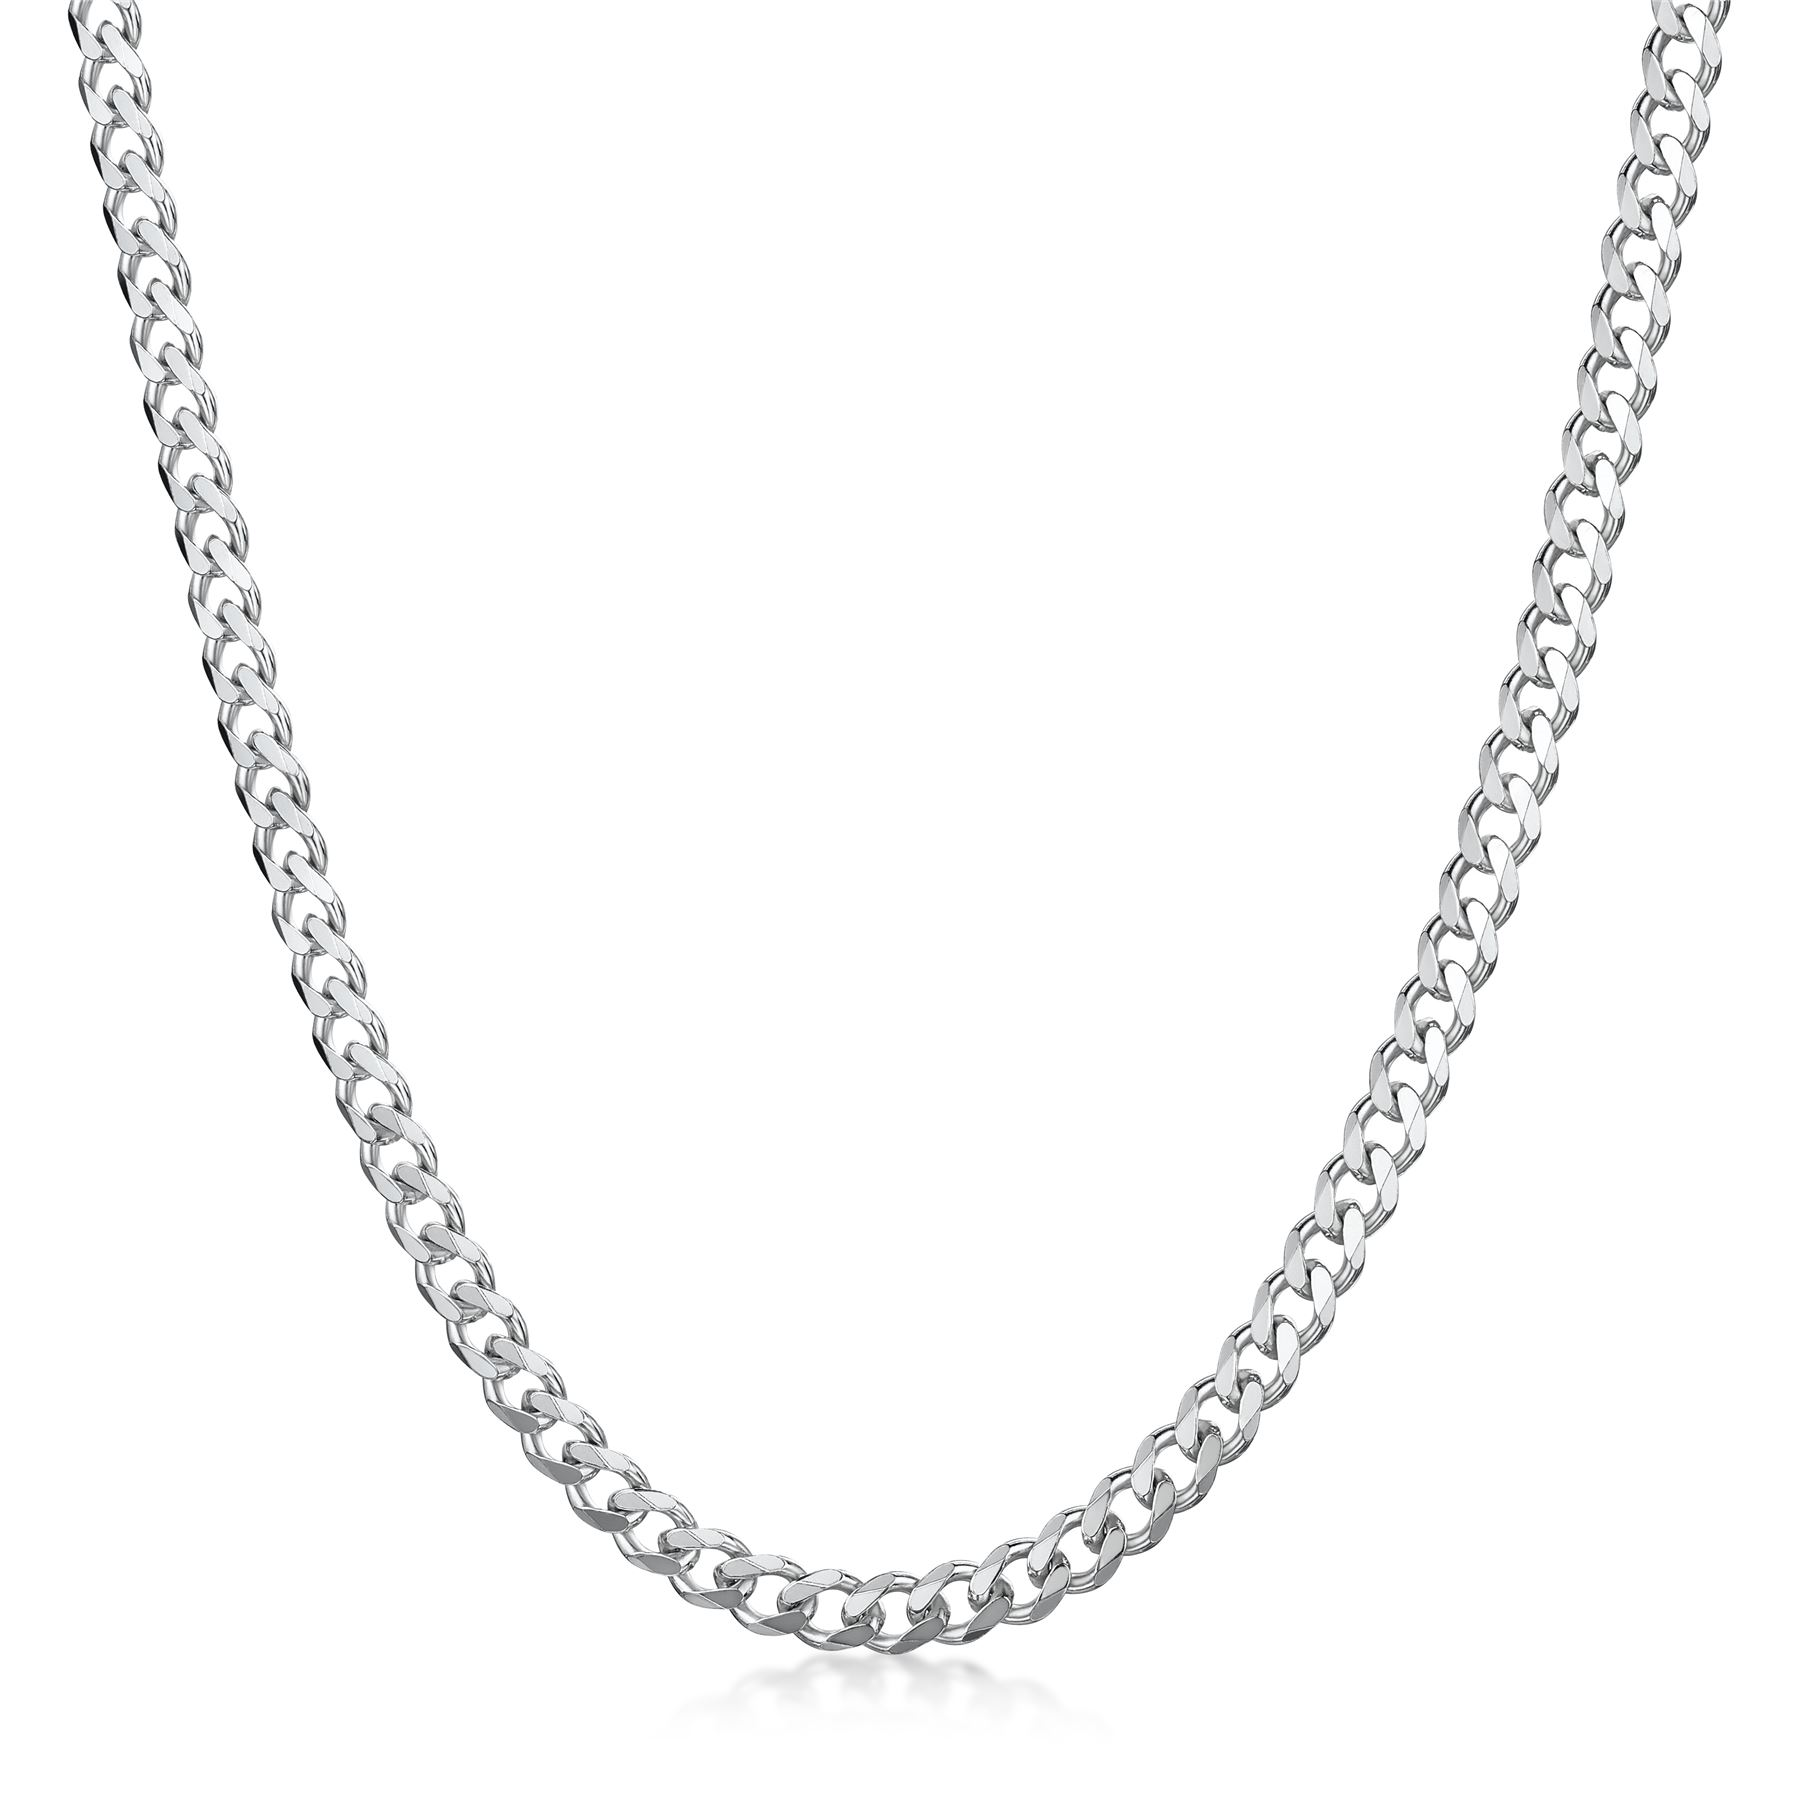 Amberta-925-Sterling-Silver-Link-Chain-Mens-Curb-Cuban-Necklace-ALL-SIZES-Italy thumbnail 26